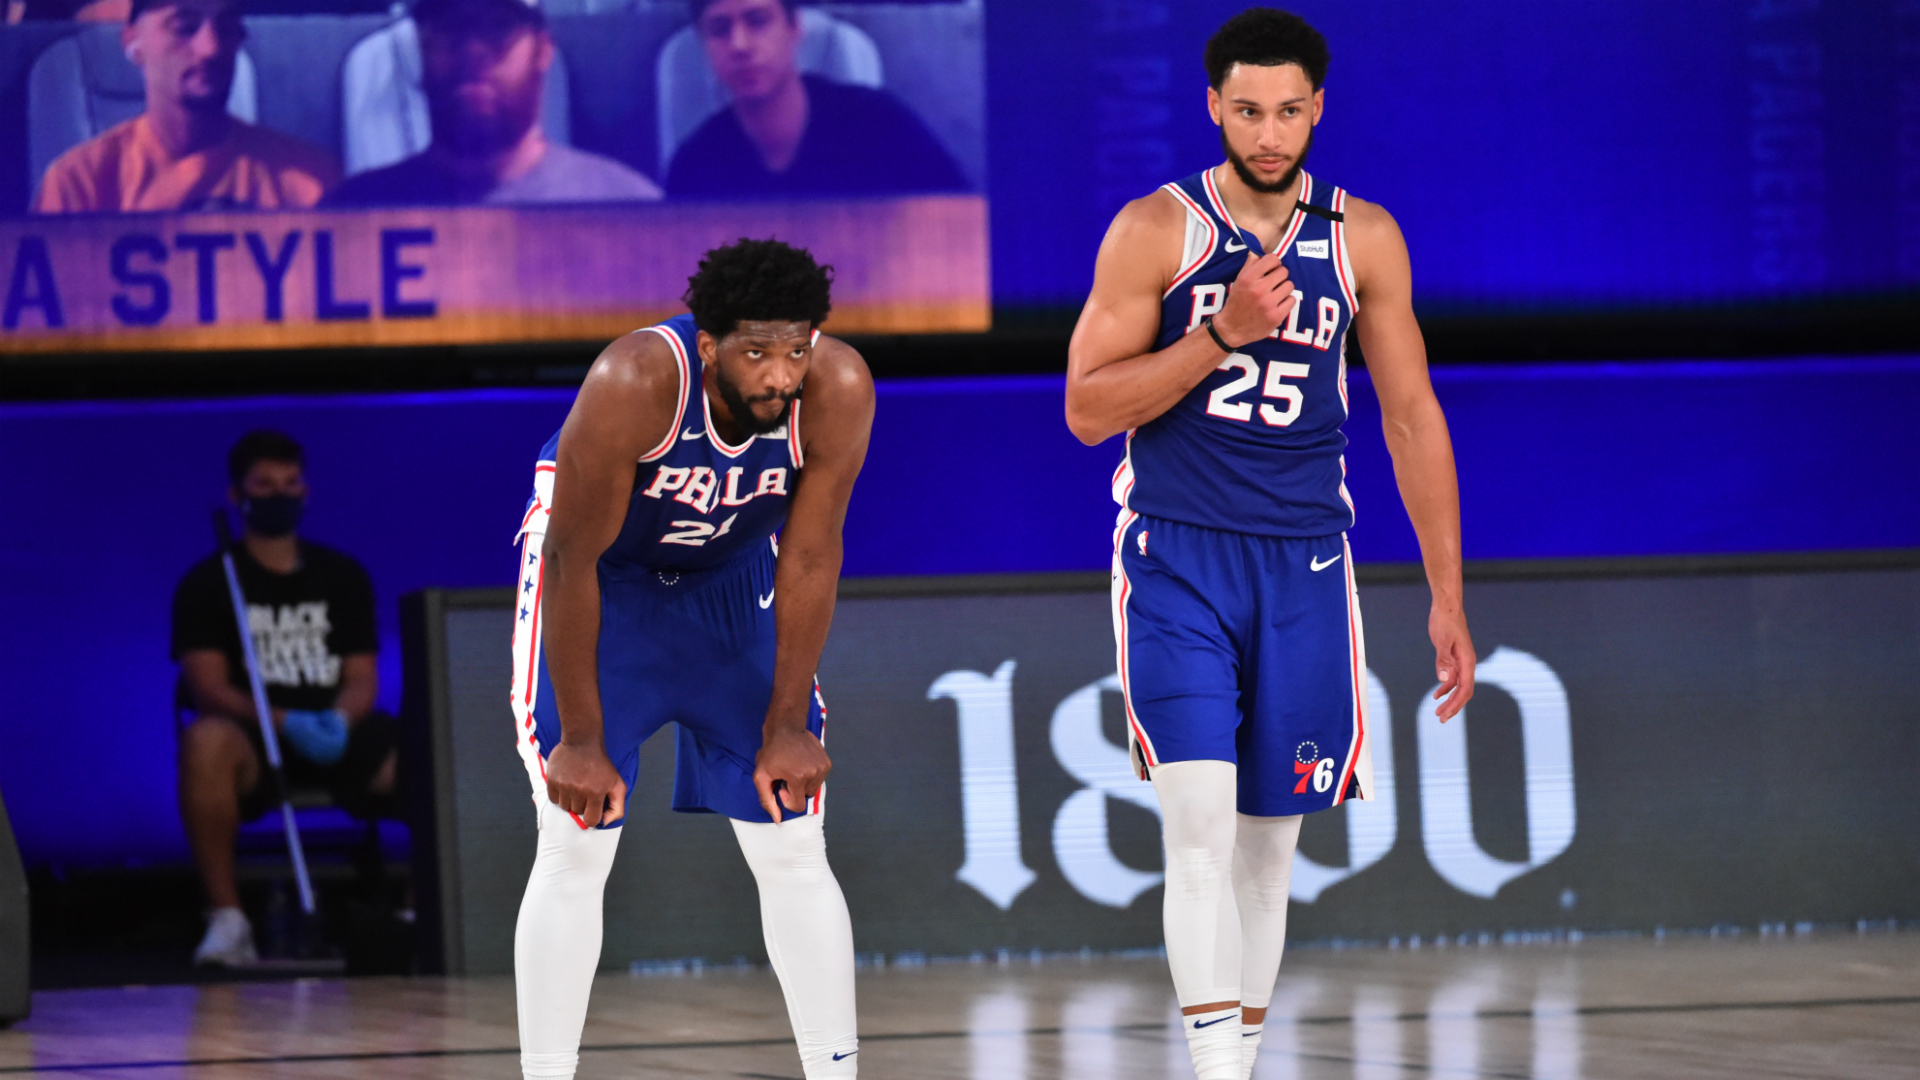 Simmons believes 76ers can win NBA championship